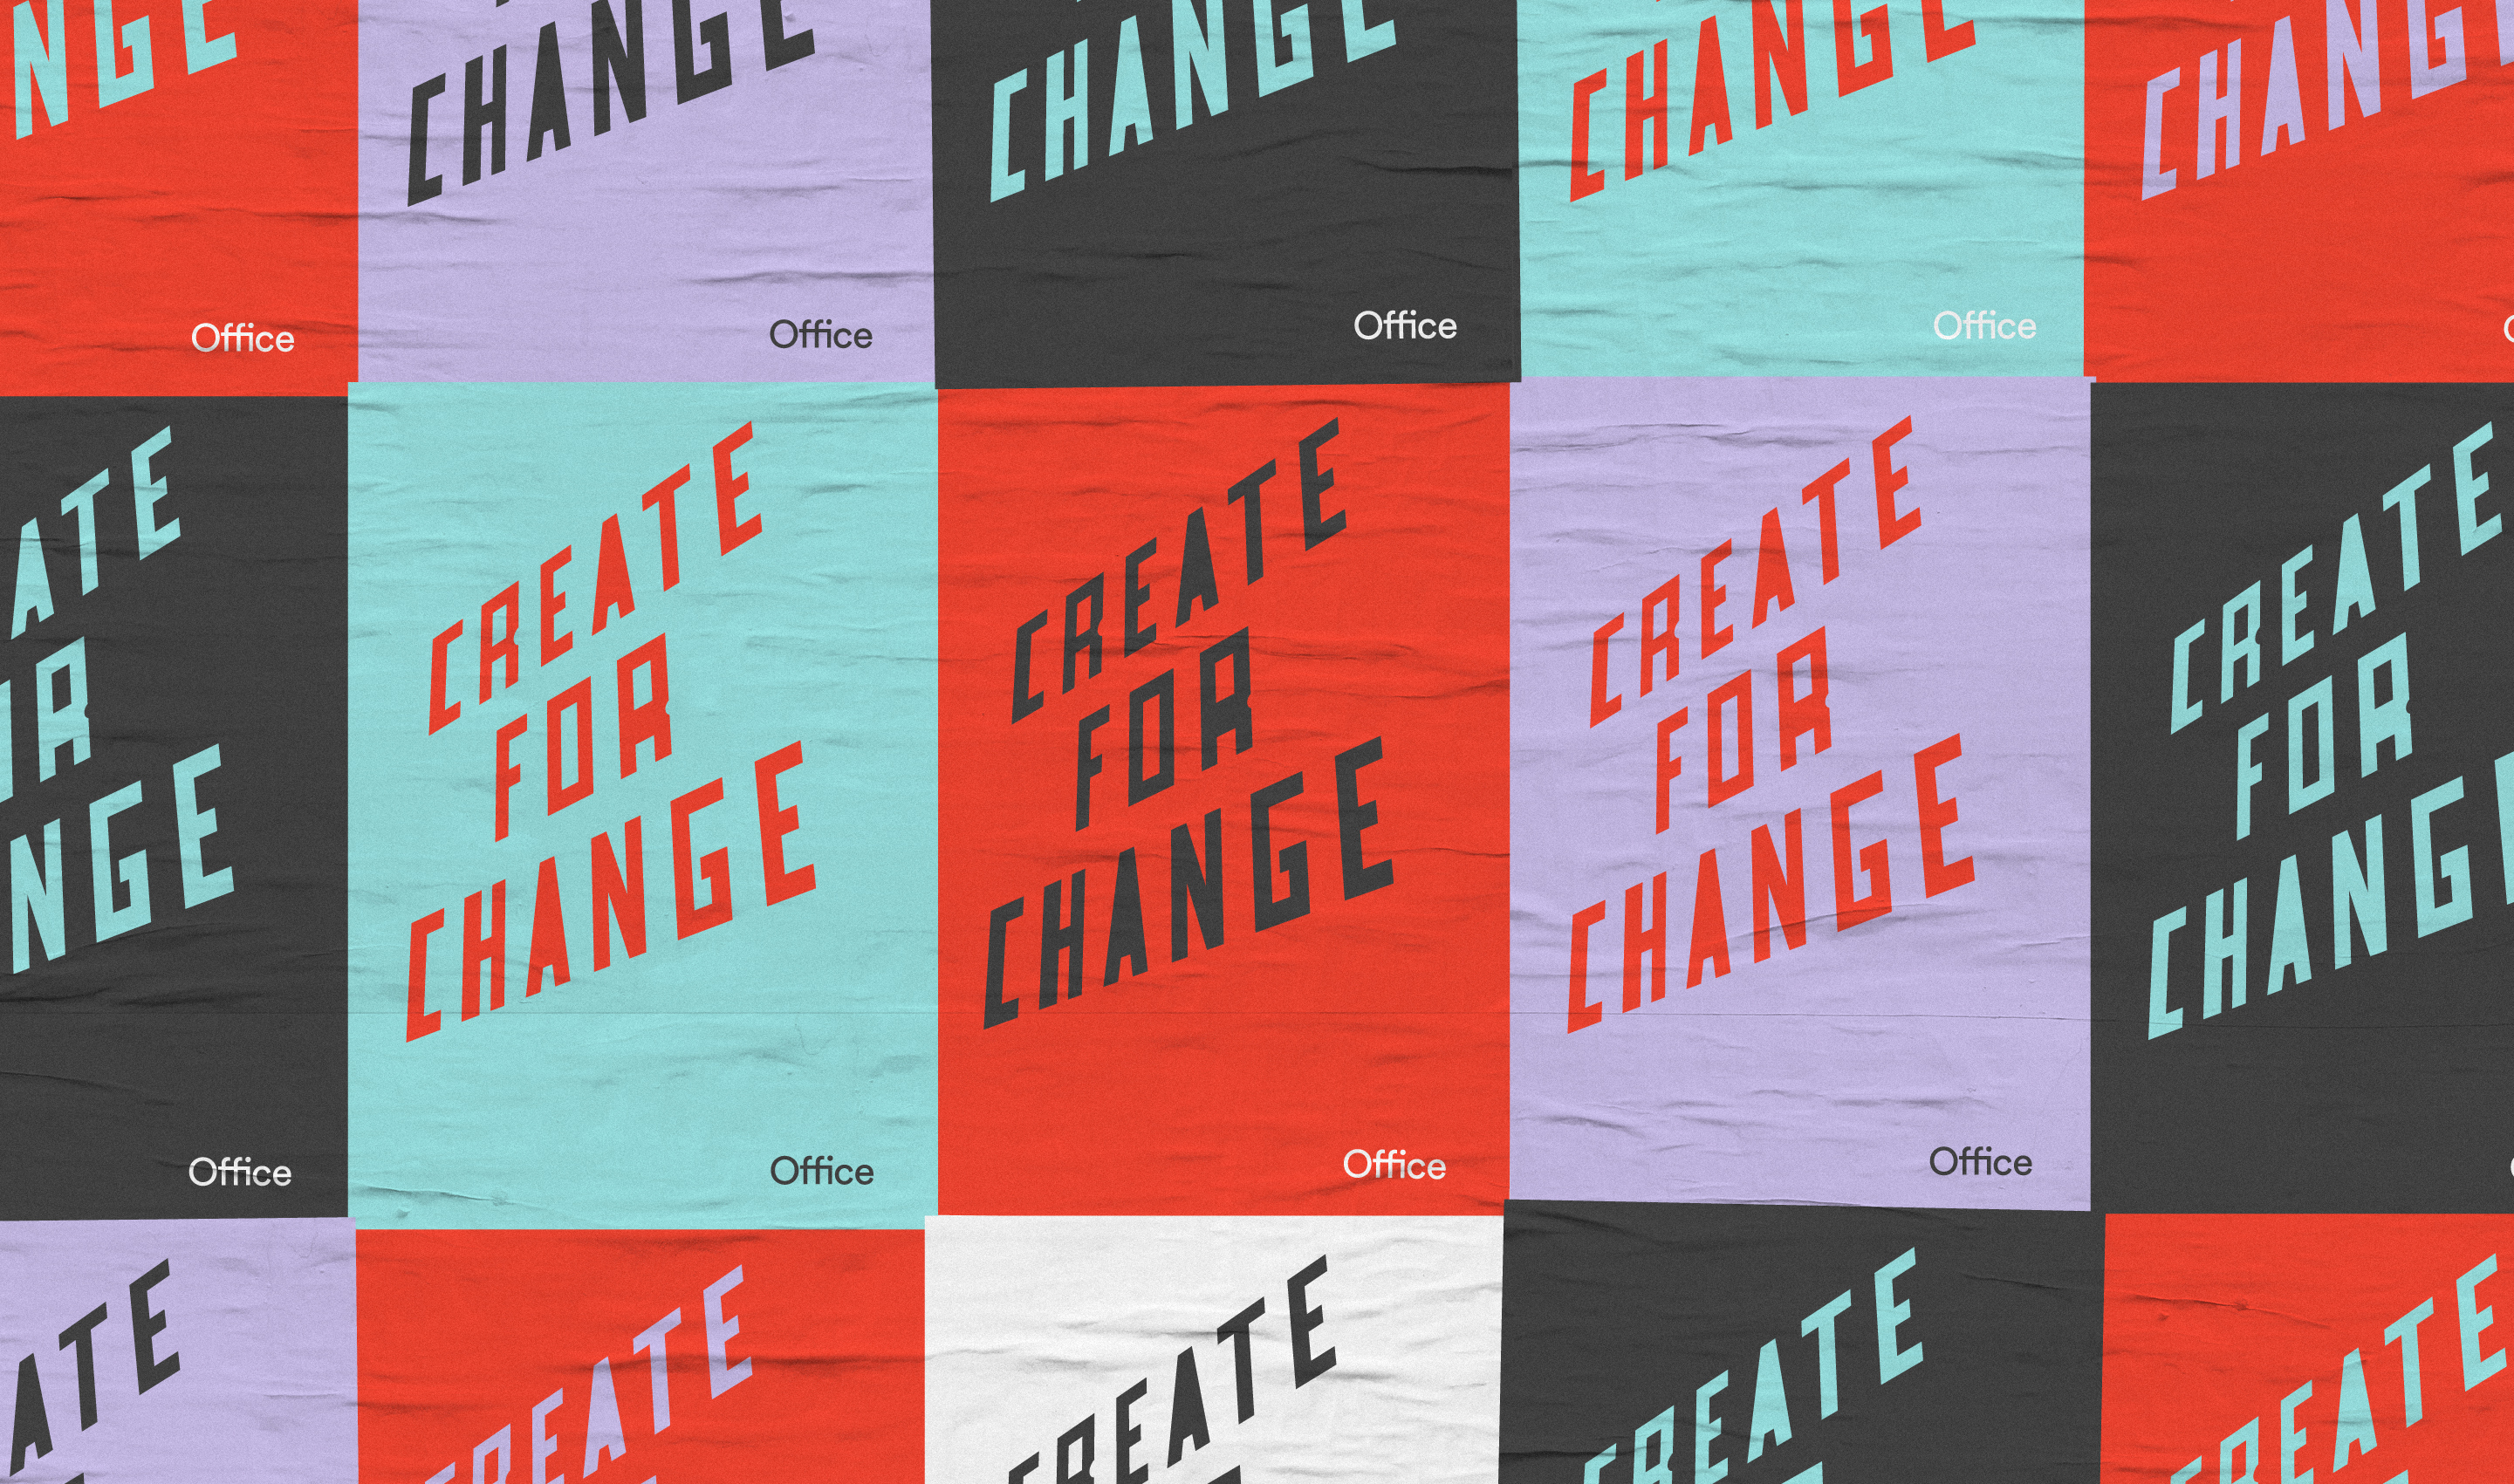 Office Create For Change